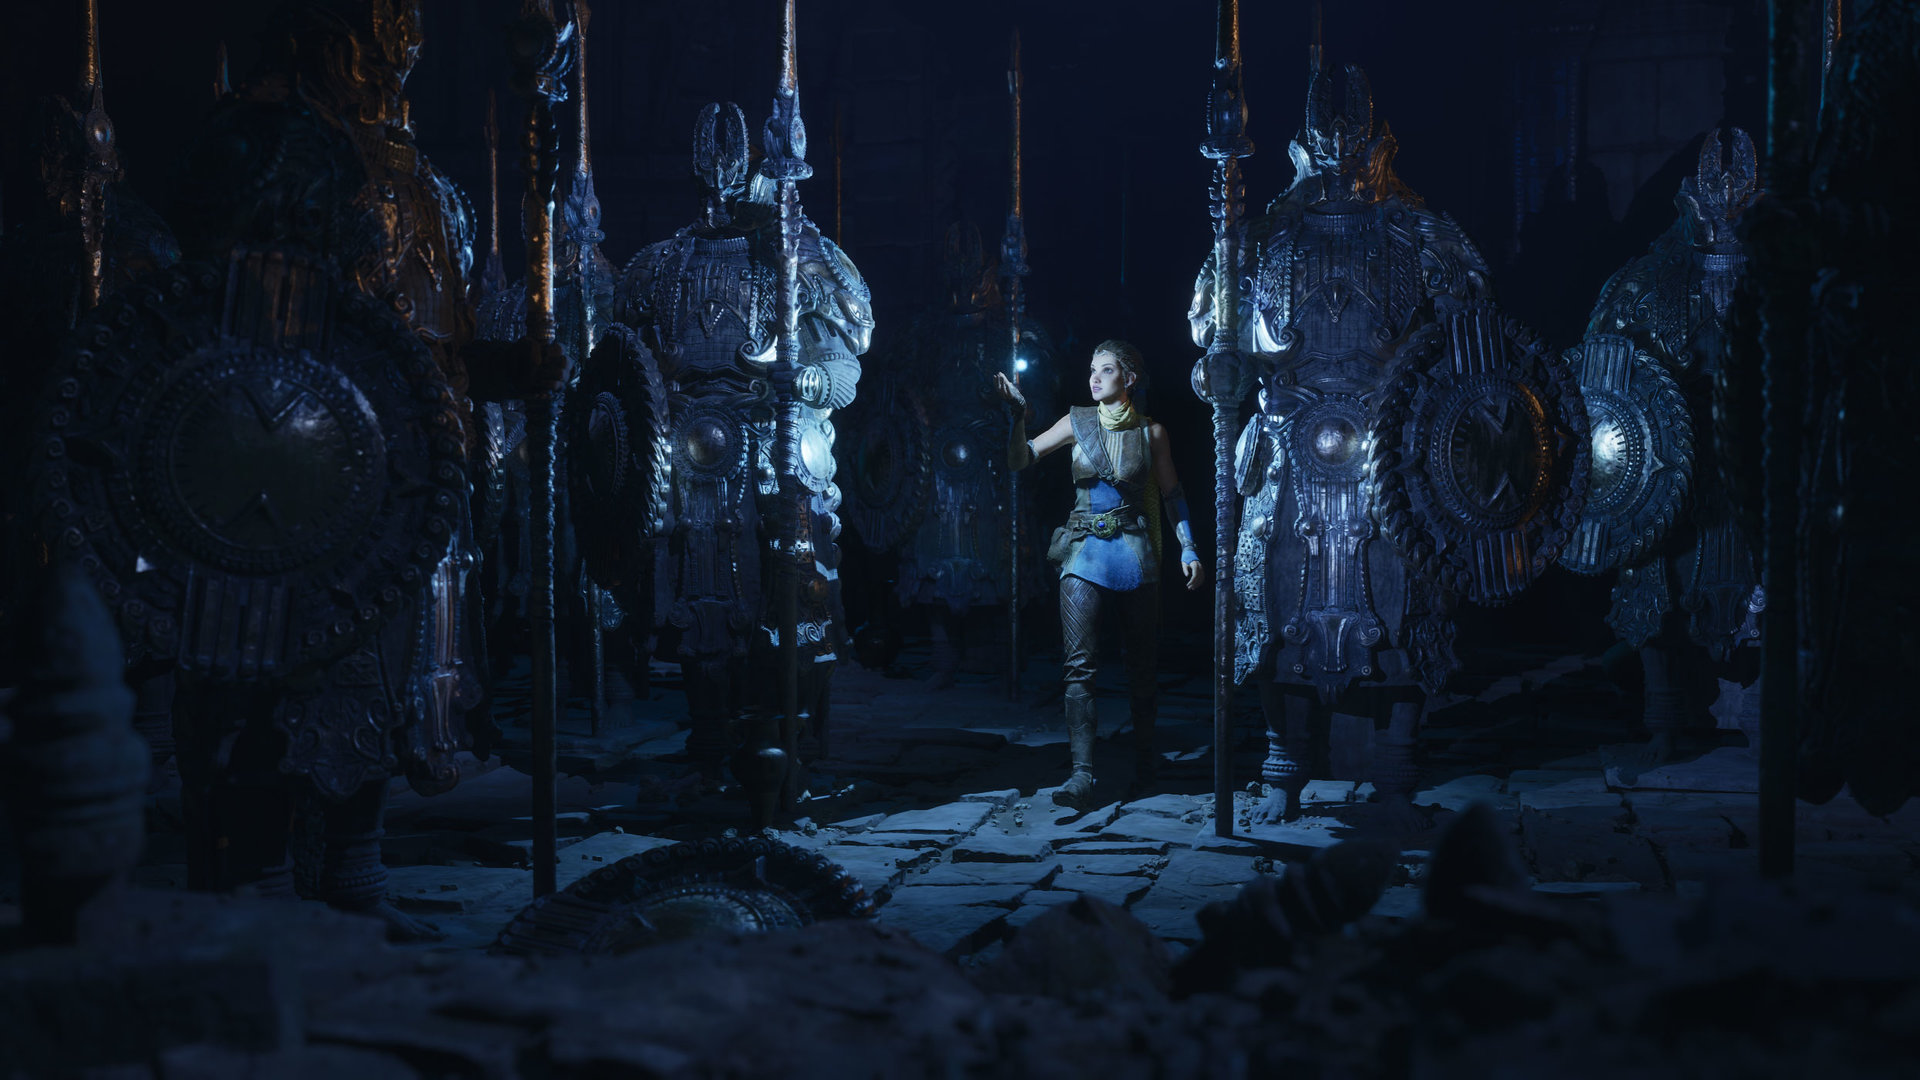 Unreal_Engine_blog_a-first-look-at-unreal-engine-5_Unreal_Engine_5_Gallery_3-2491x1400-b9dc657...jpg